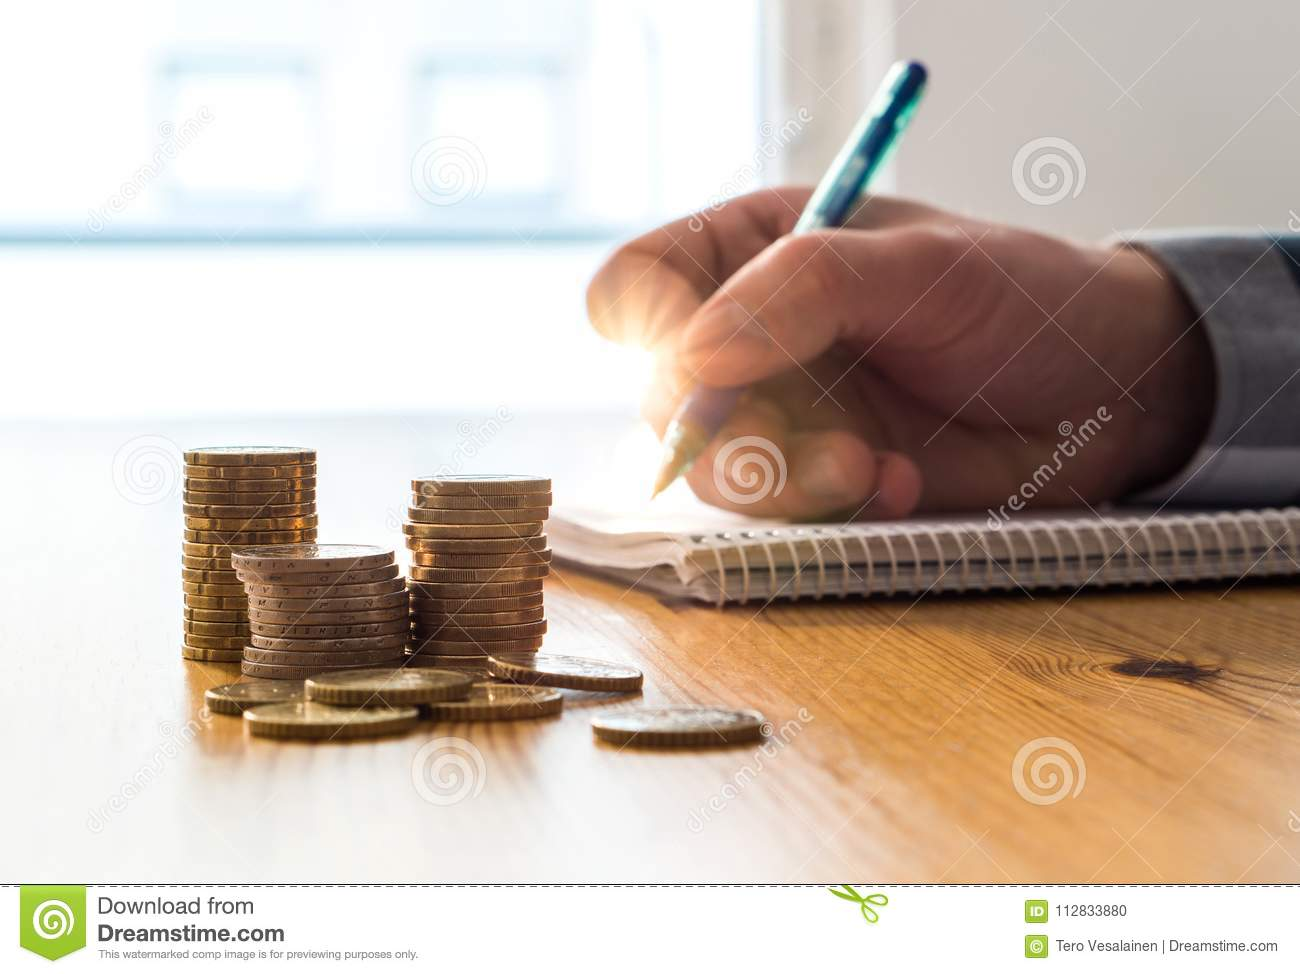 Man counting expenses, budget and savings and writing notes.